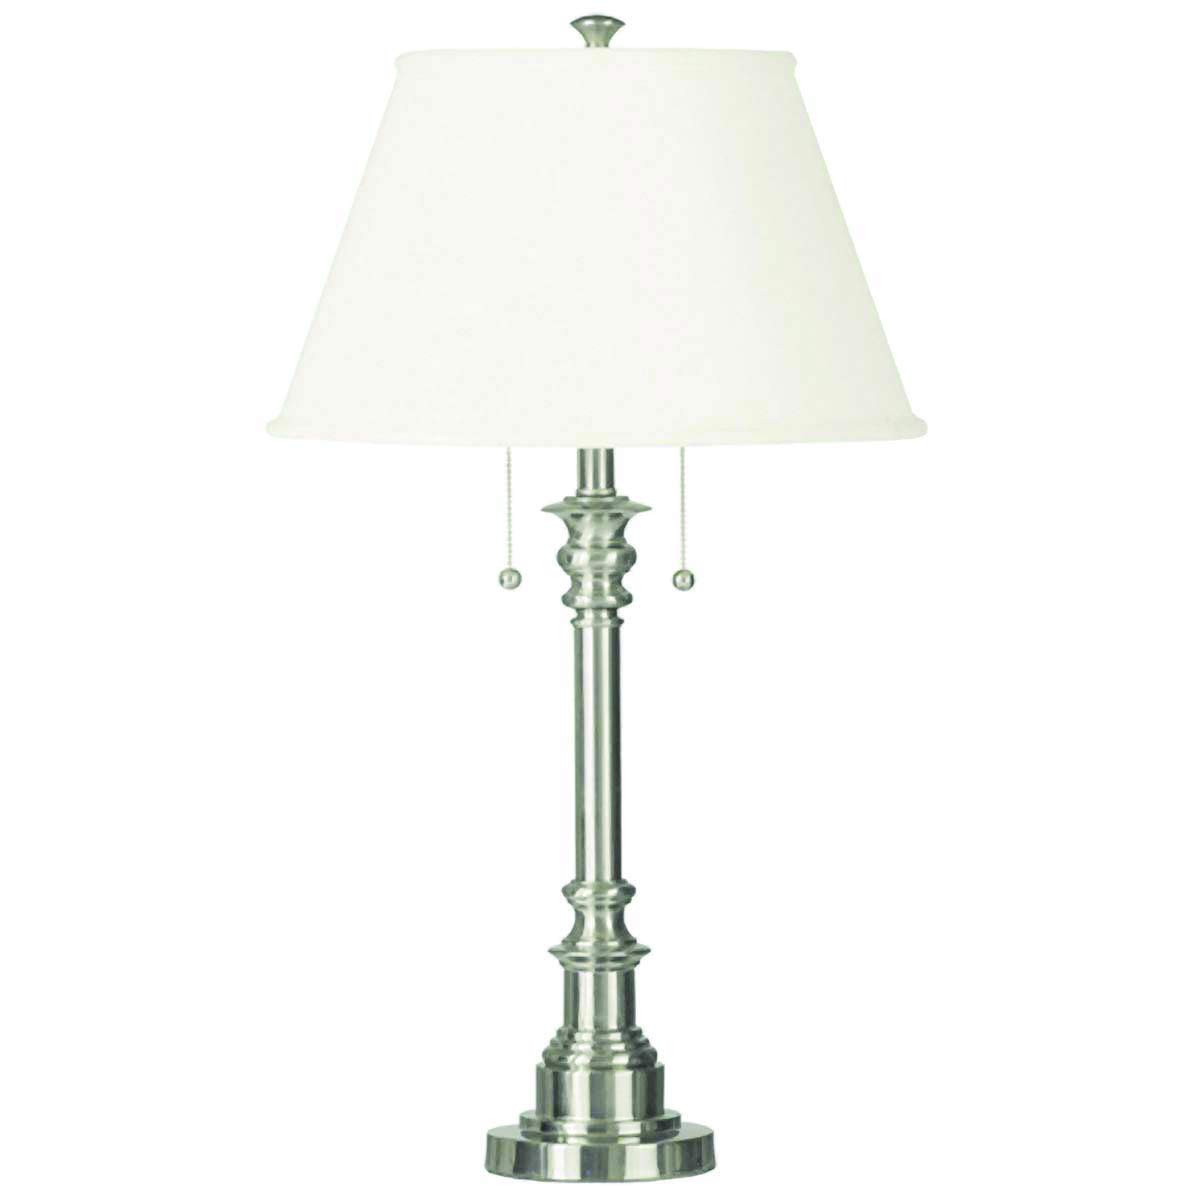 Kenroy Home Modern Brushed Steel Table Lamp, Dual On/Off Pull Chains, 30 Inch Height, White Natural Linen Shade